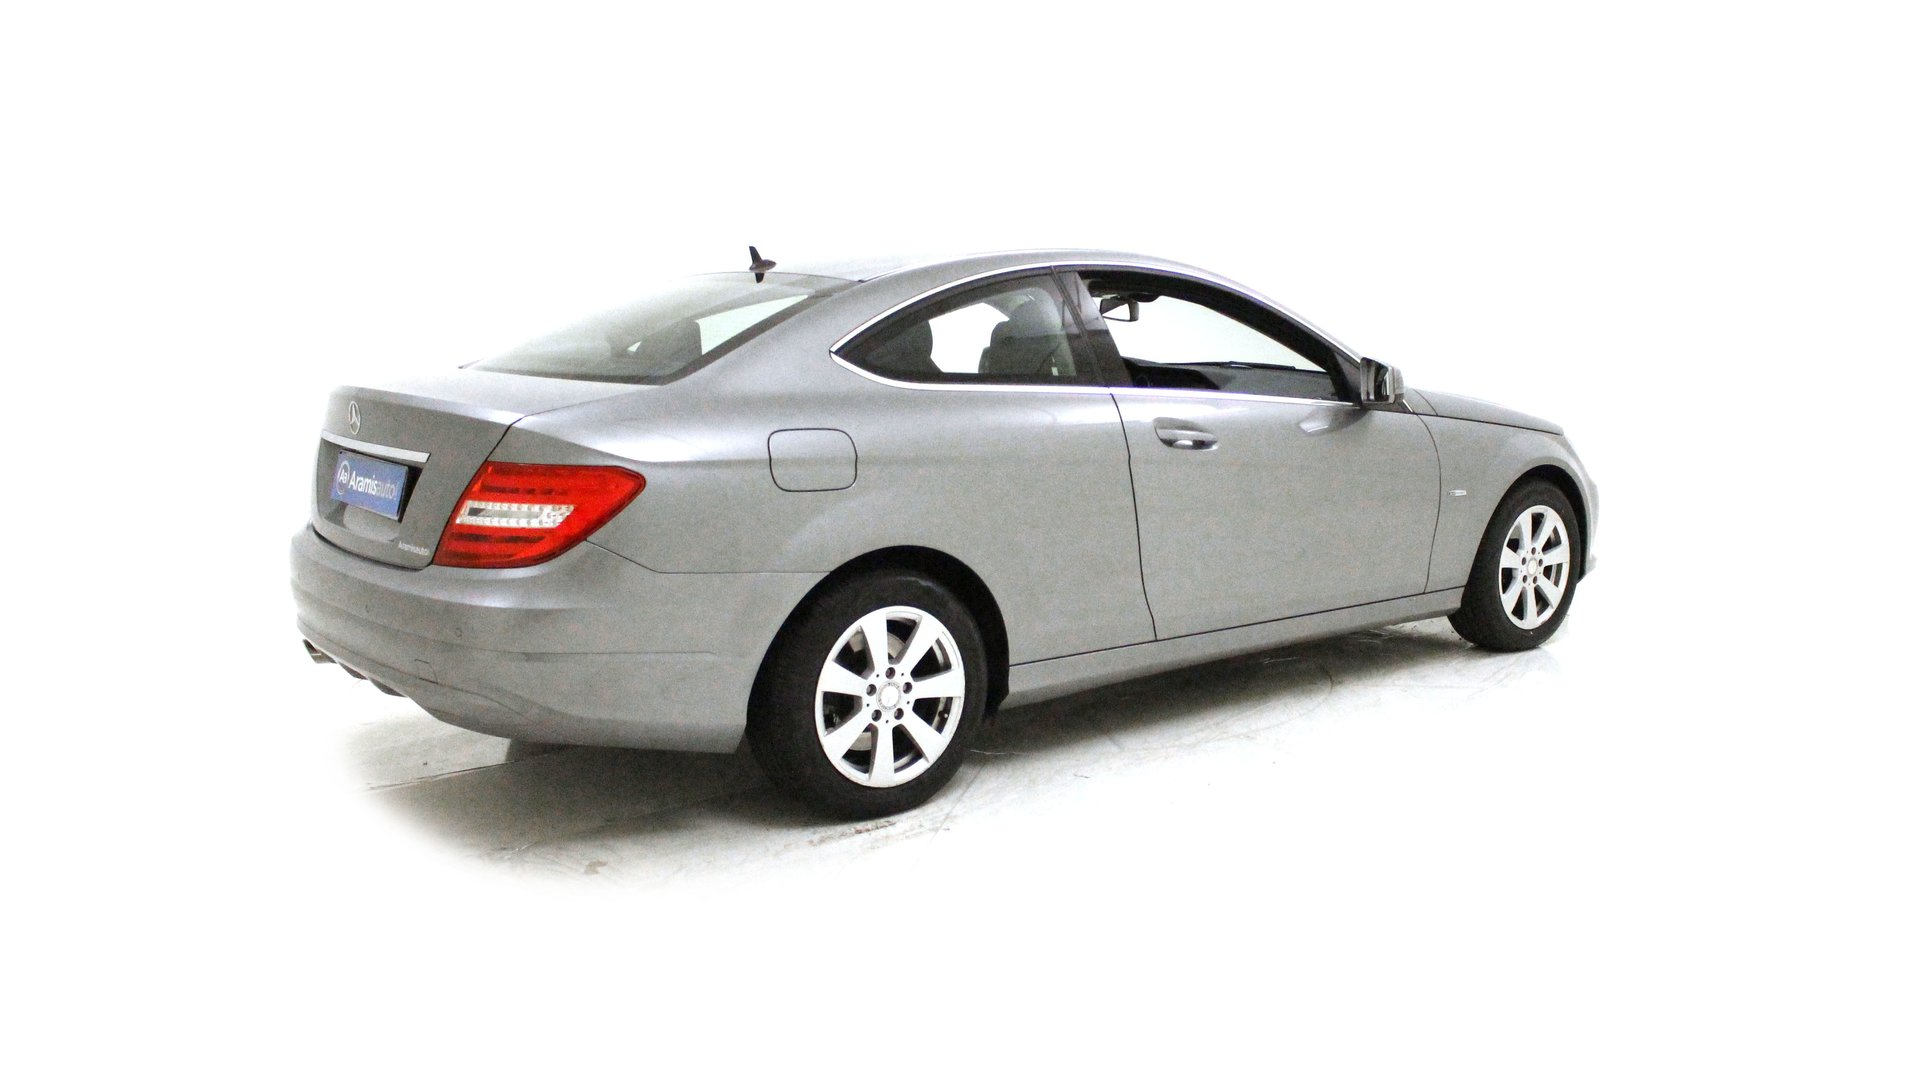 Mercedes classe c coupe sport routi re 2 portes - Mercedes classe c coupe sport occasion ...